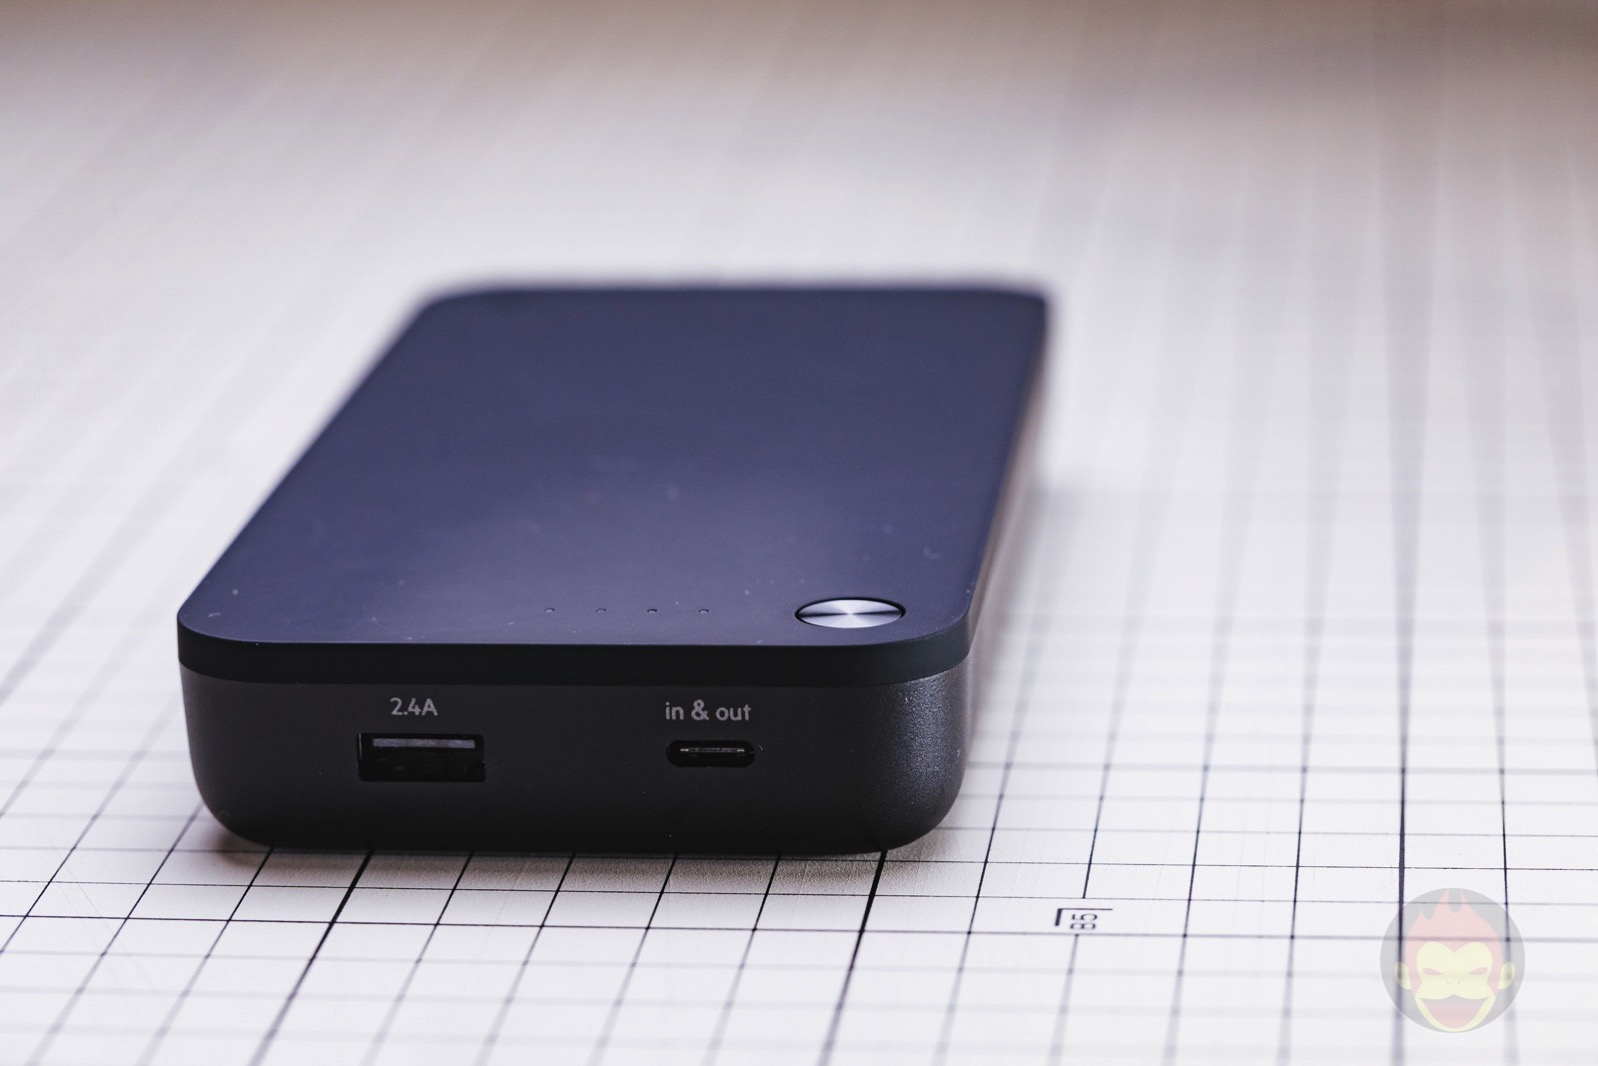 Belkin-Boost-Charge-Mobile-Battery-20100mAh-Review-05.jpg